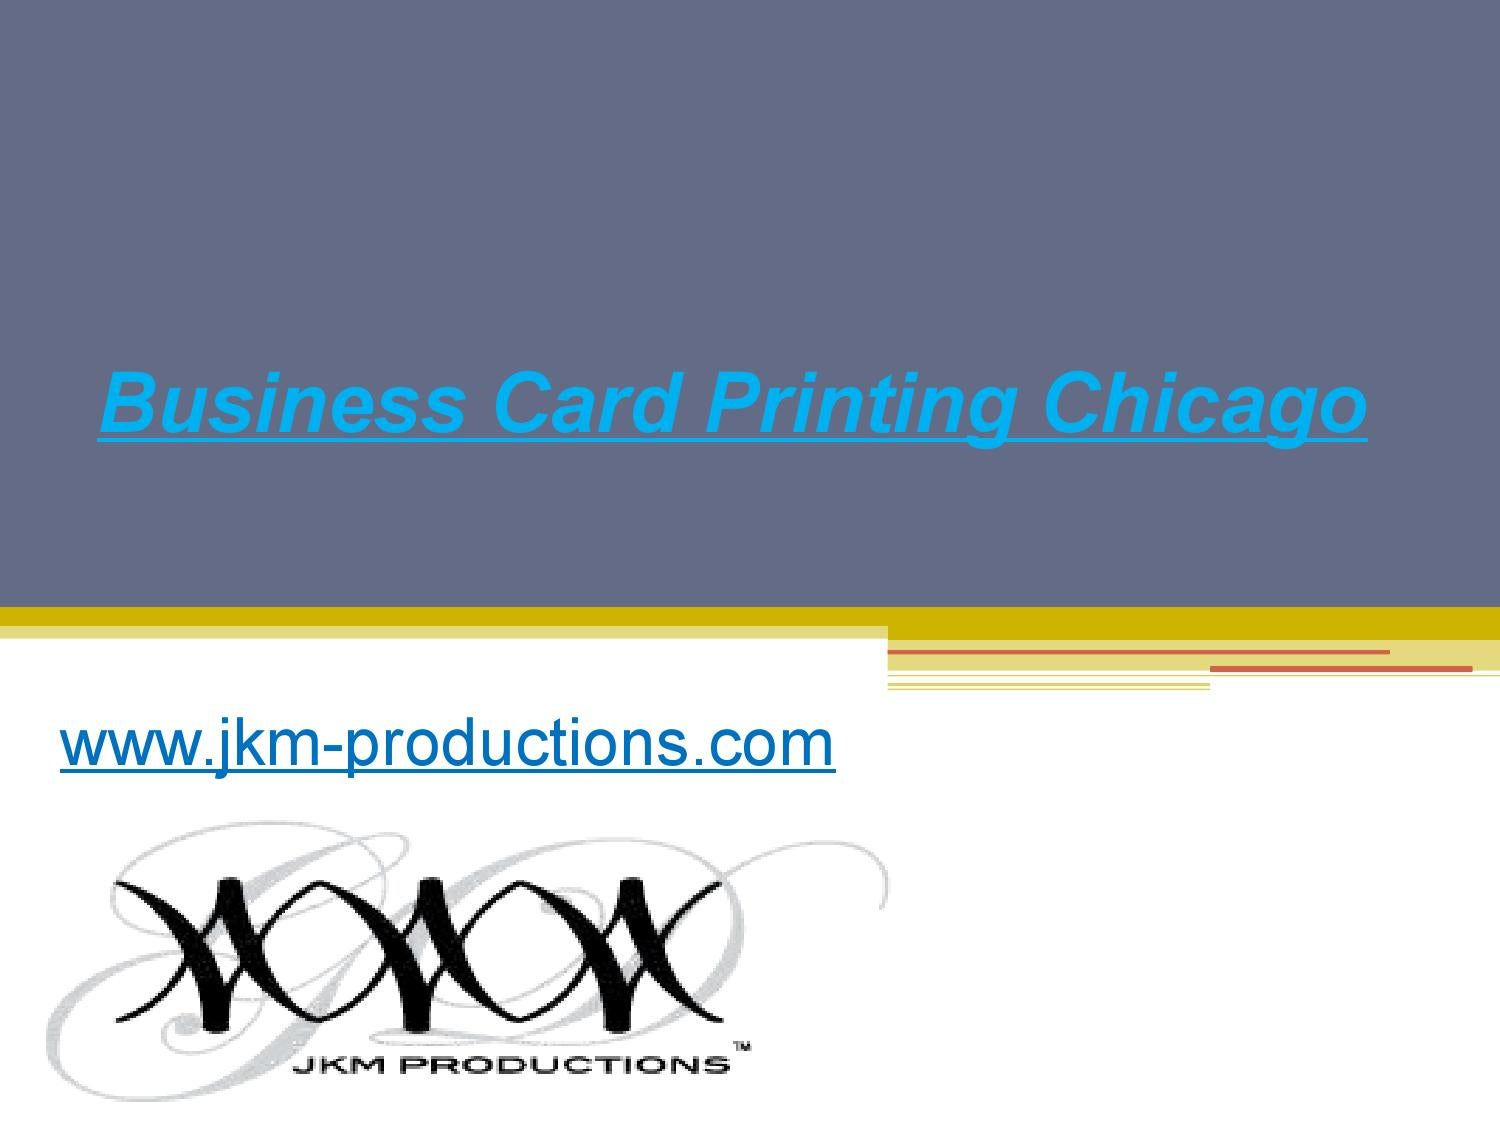 Business card printing chicago jkm productions by business card printing chicago jkm productions by jkmproductions issuu colourmoves